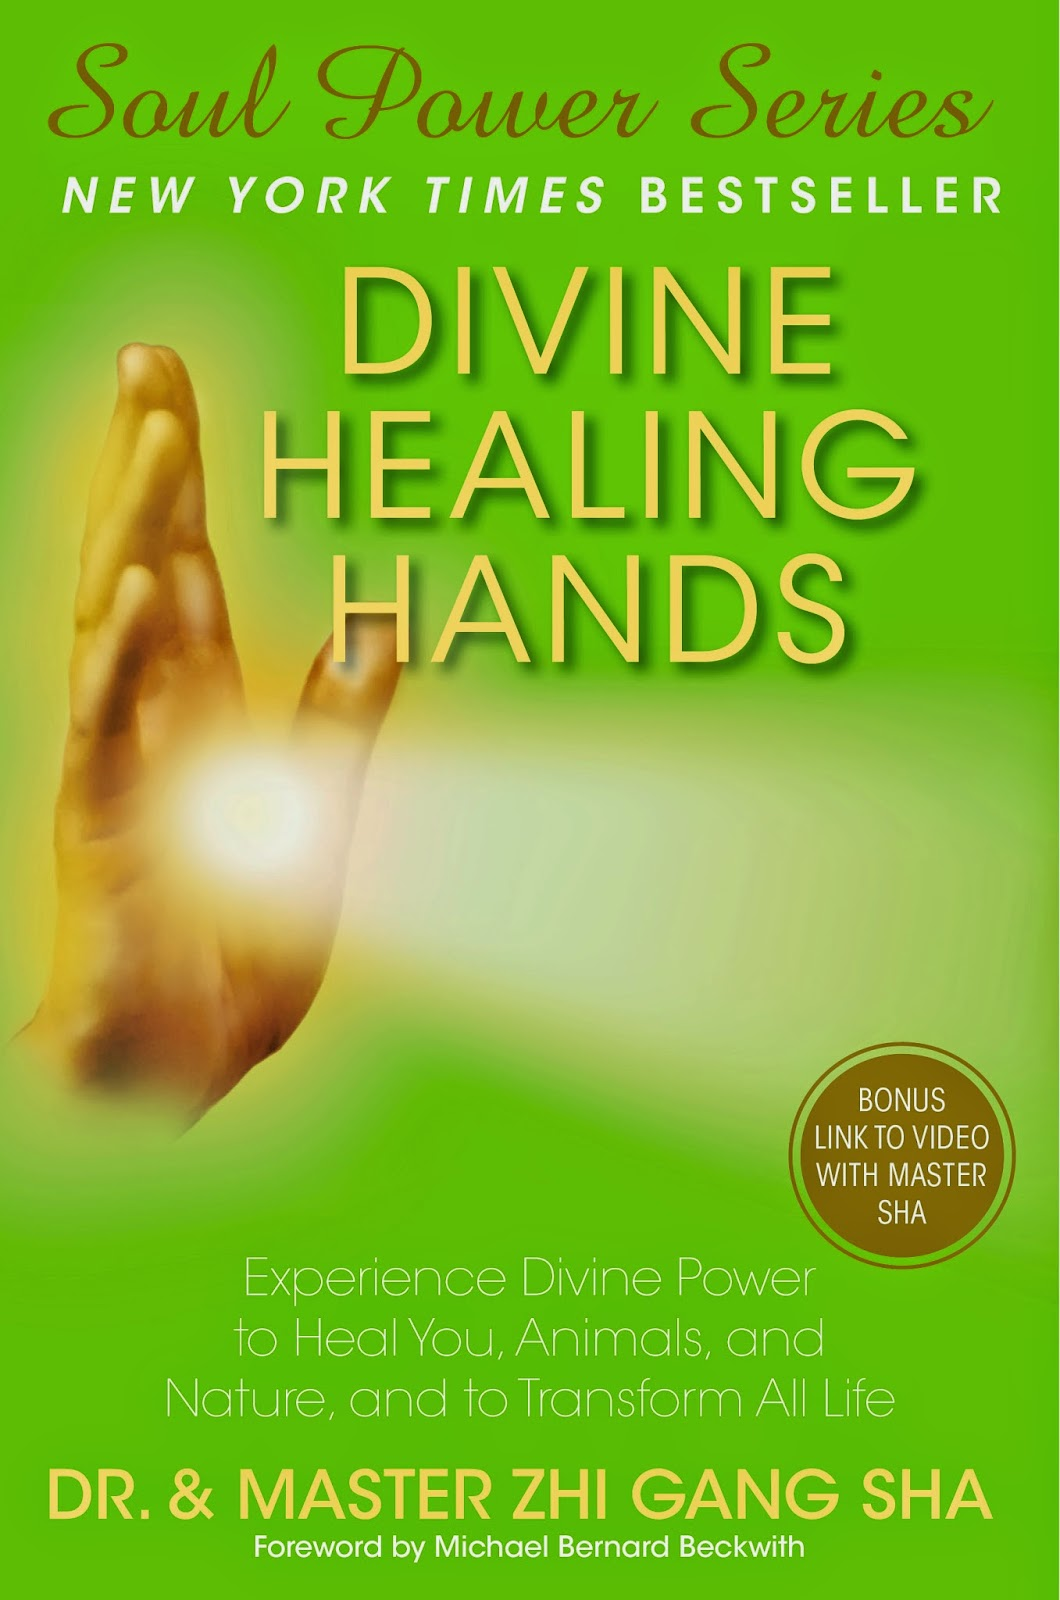 What is the Tao, What is Divine Healing Hands, Can Divine Healing Hands Heal Me, Clear karma, to help you to, reach the Tao,Heal, Love, Master Sha,